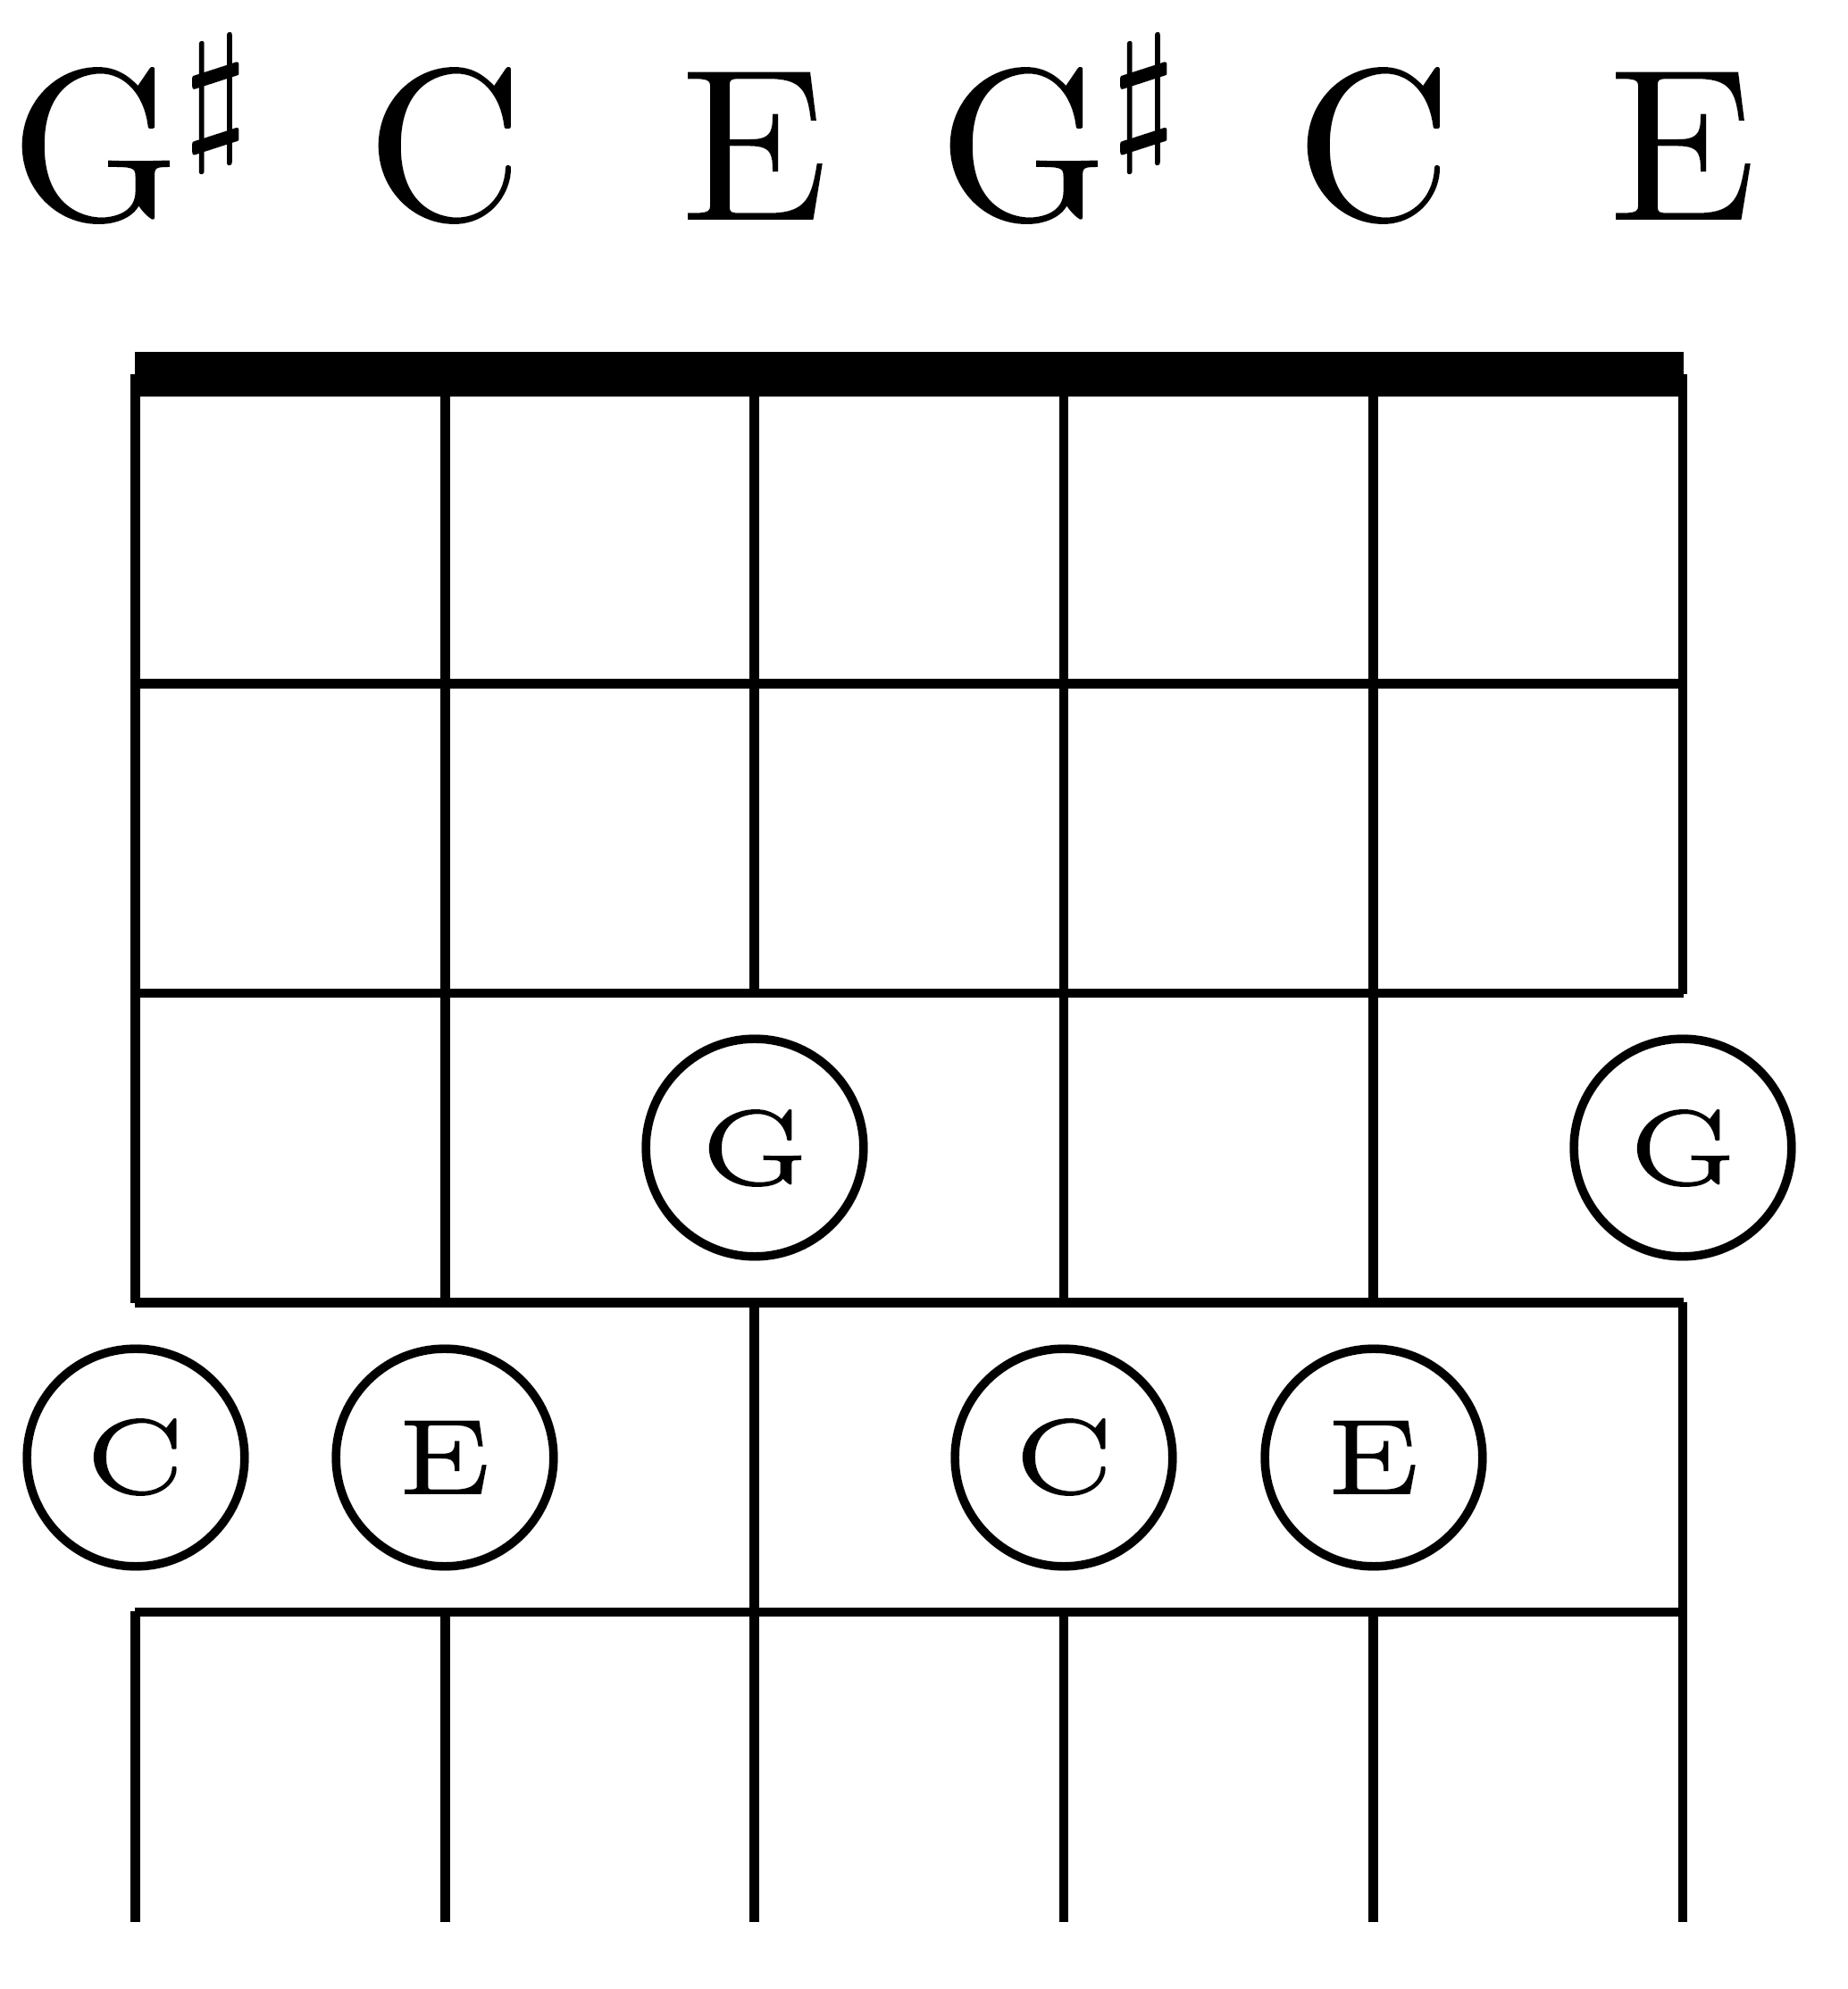 Fileshift C Major Chord Three Strings In Major Thirds Tuning On Six